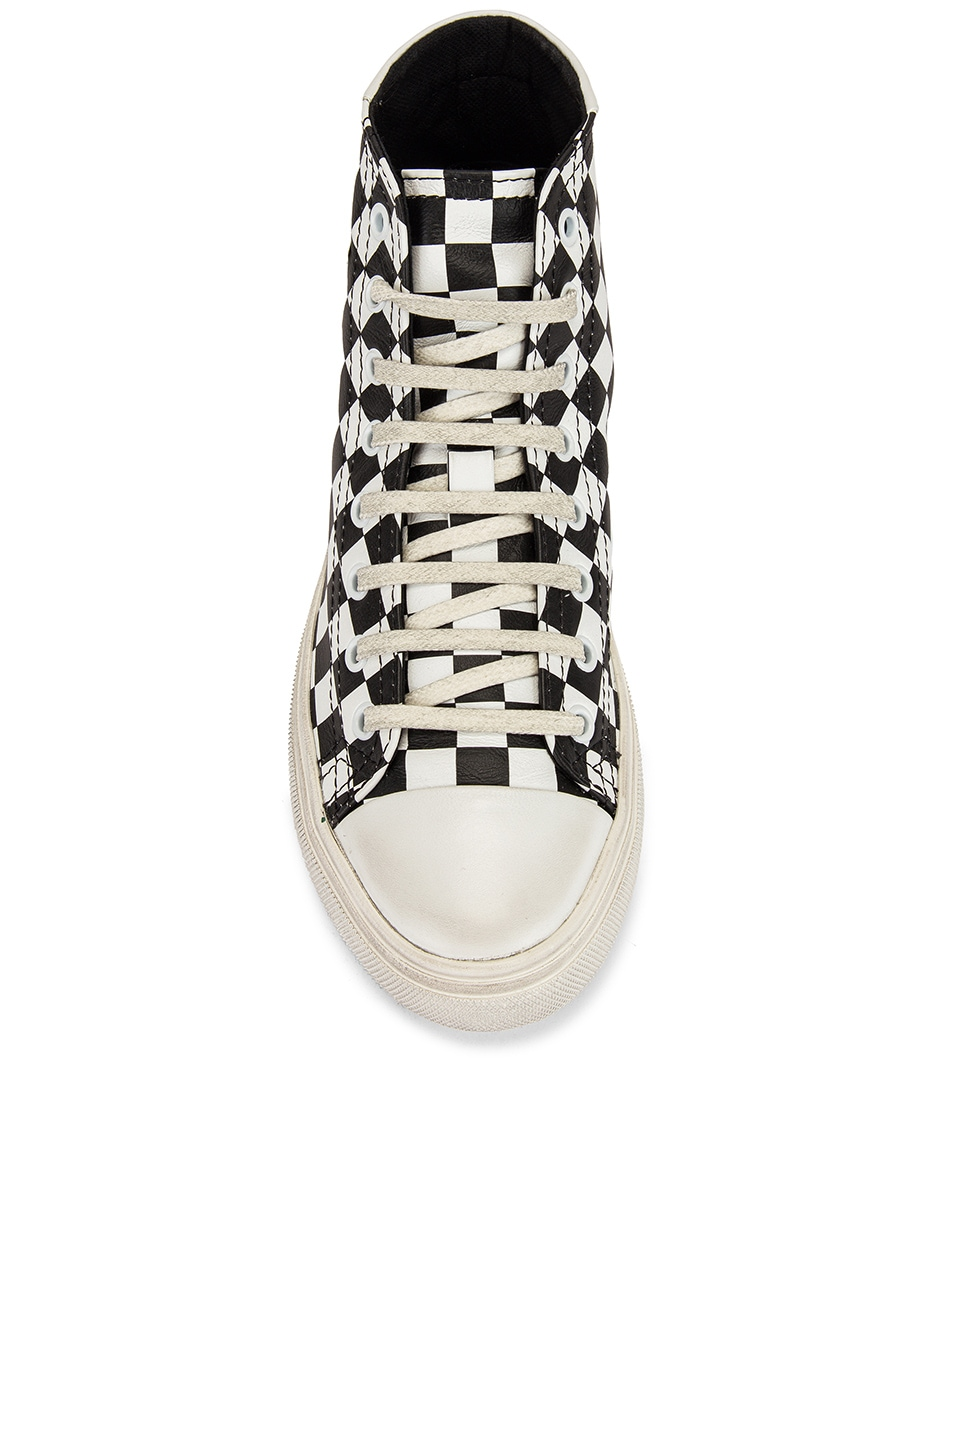 Image 4 of Saint Laurent Bedford Checkered Mid Top Sneakers in Black & White